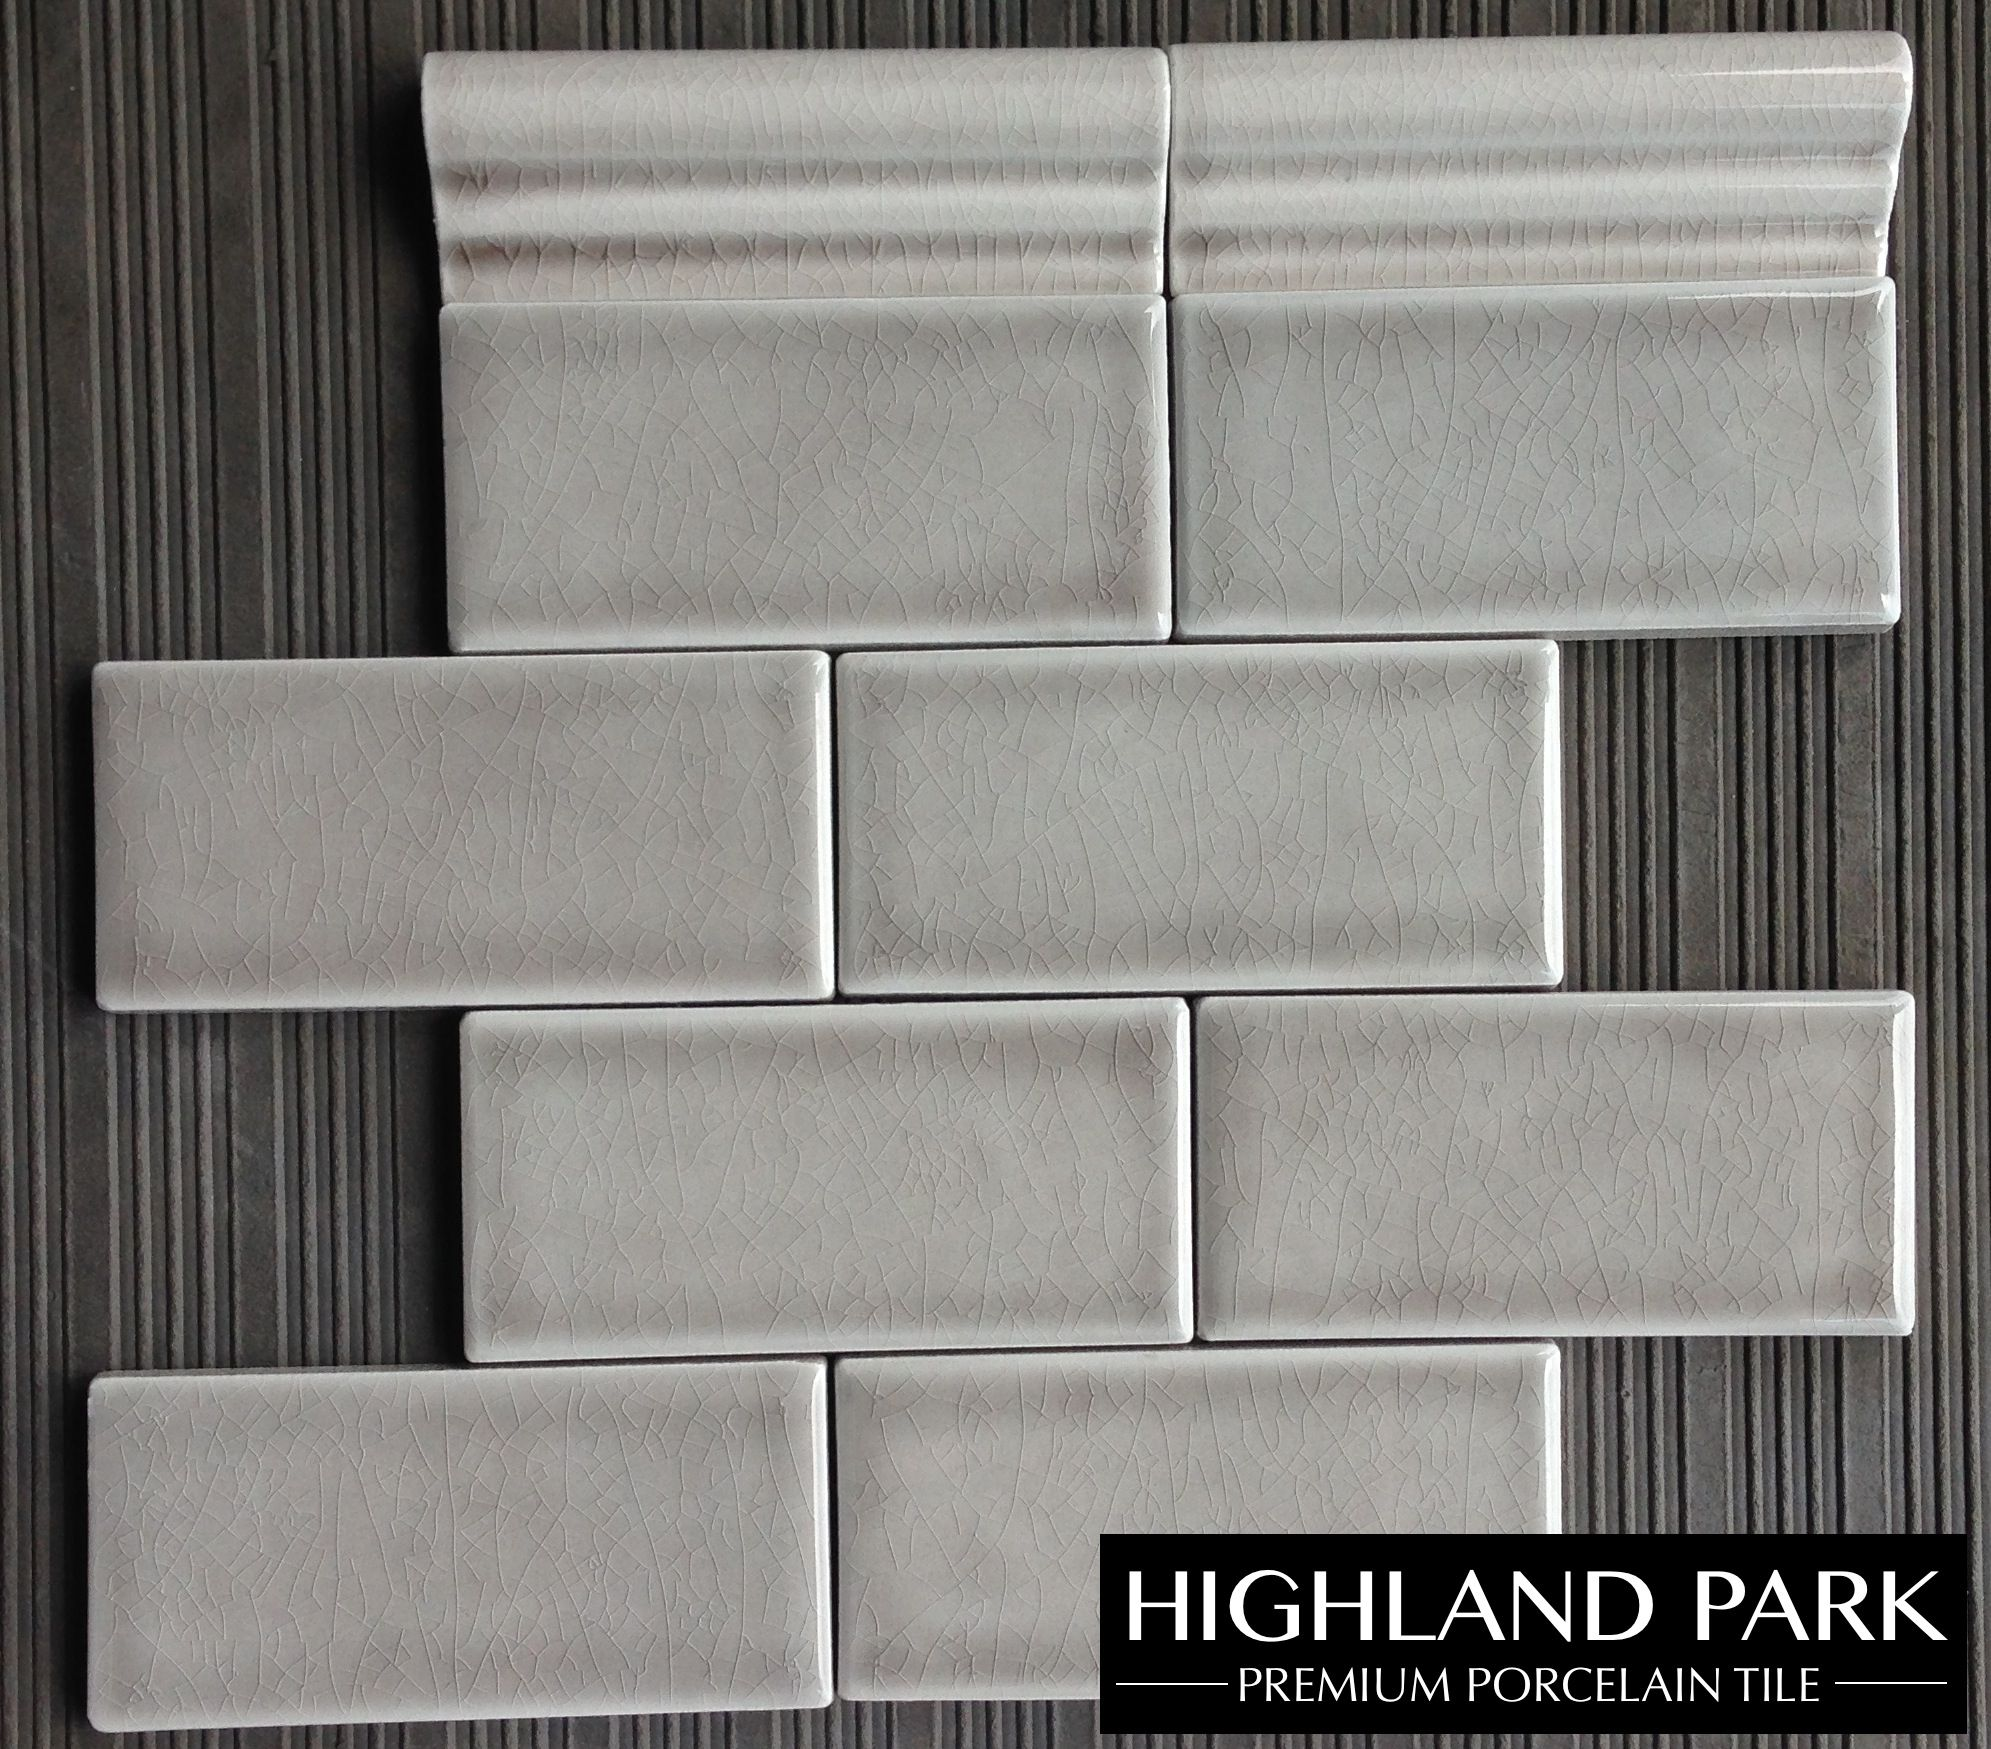 Dove Gray 3x6 Crackle Subway Tile Available Online From Thebuilderdepot Com For 8 50 Square F Gray Subway Tile Backsplash Backsplash Kitchen Tiles Backsplash